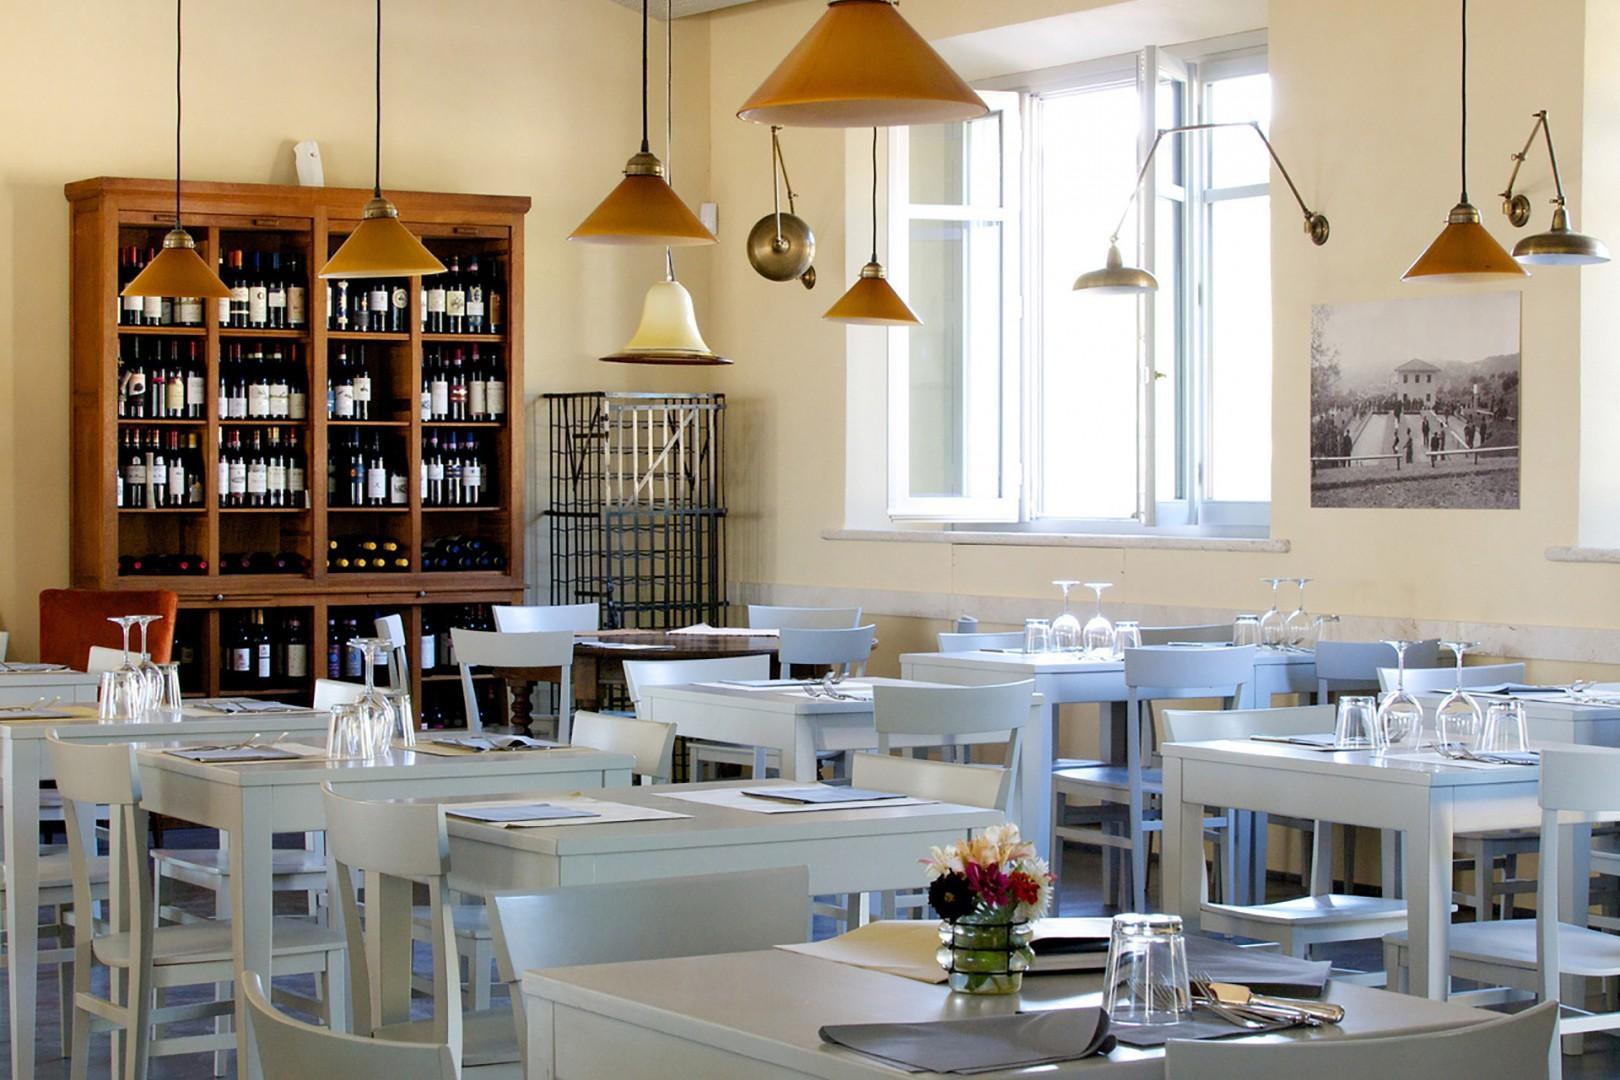 Enjoy delicious Tuscan dishes at the estate restaurant which is open from late March to October.